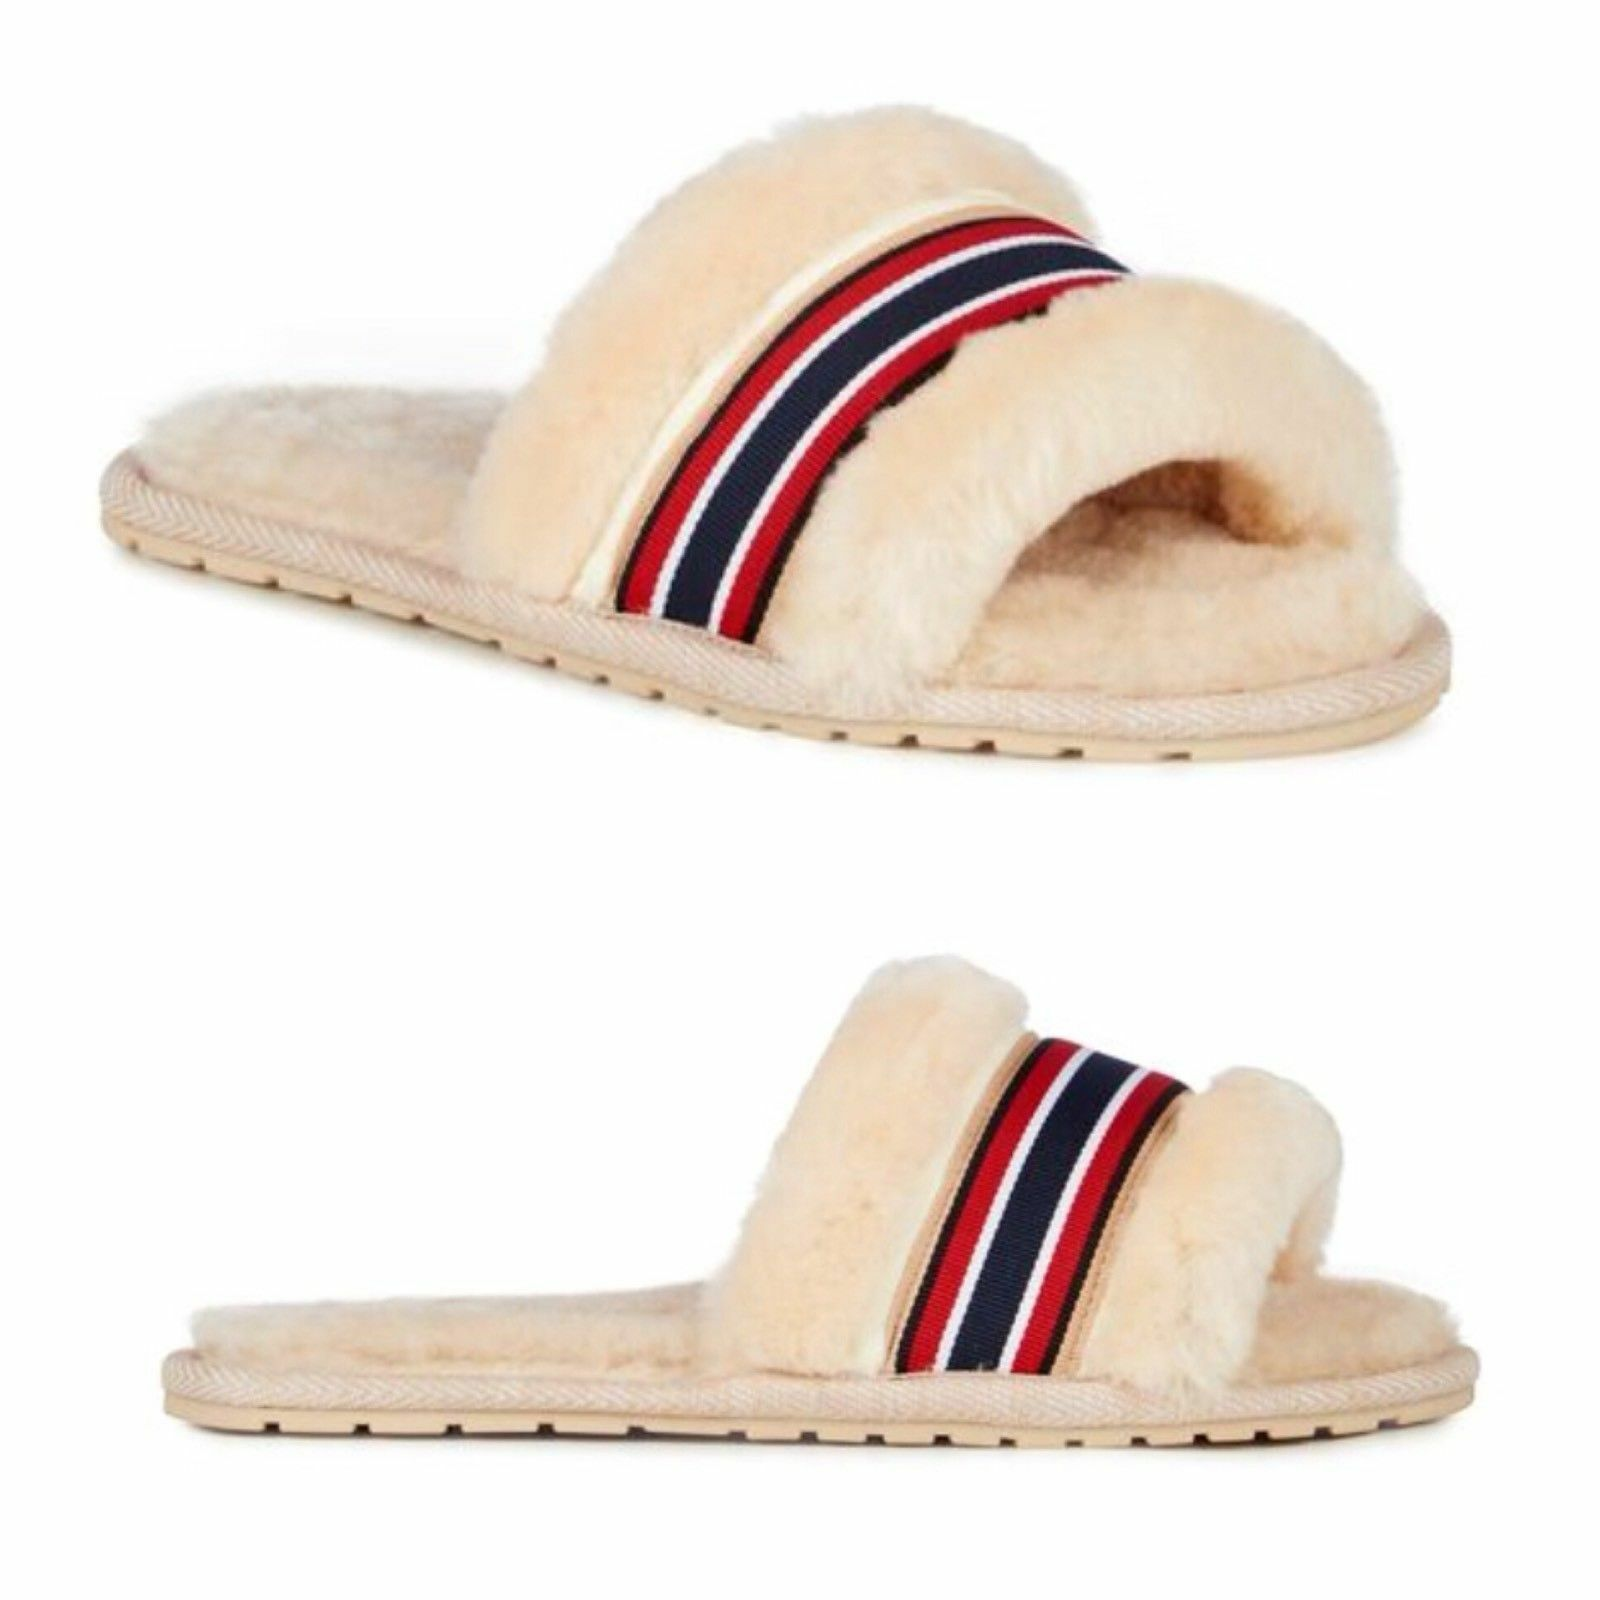 EMU Australia Wrenlette Slide Slipper Sandals  Ivory NWT women's 7